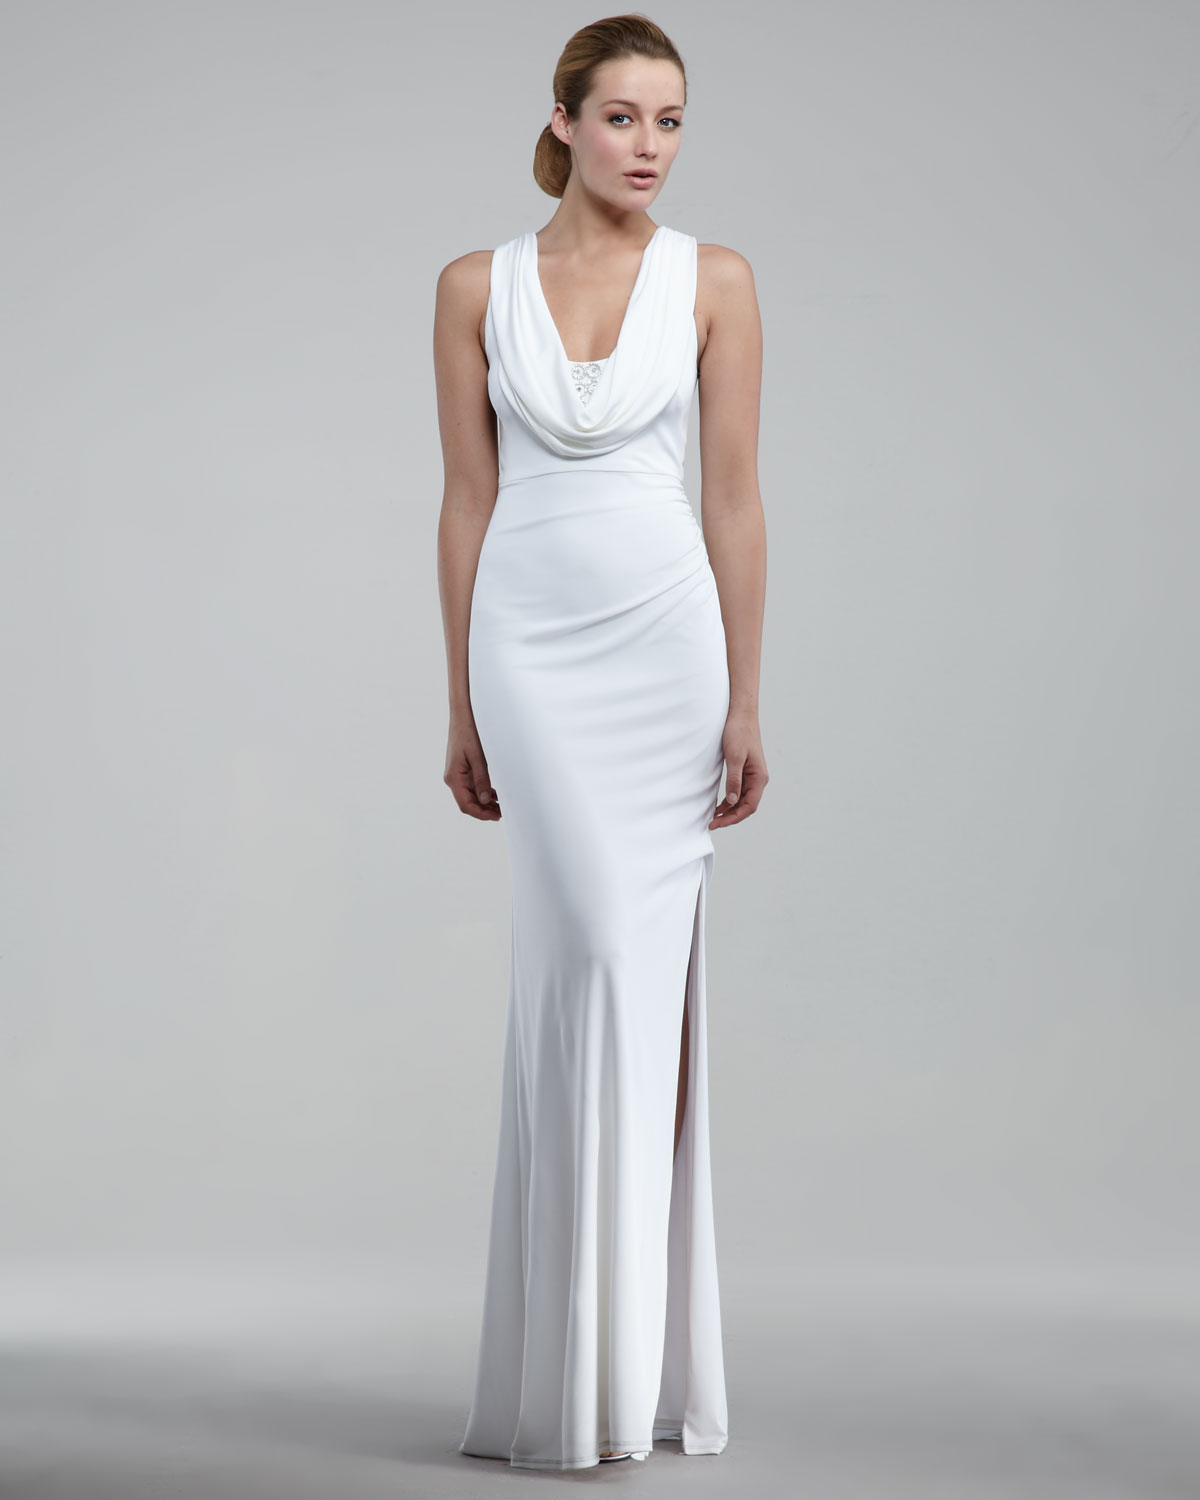 Cowl Neck Back Wedding Dresses: David Meister Cowl-neck Gown In White